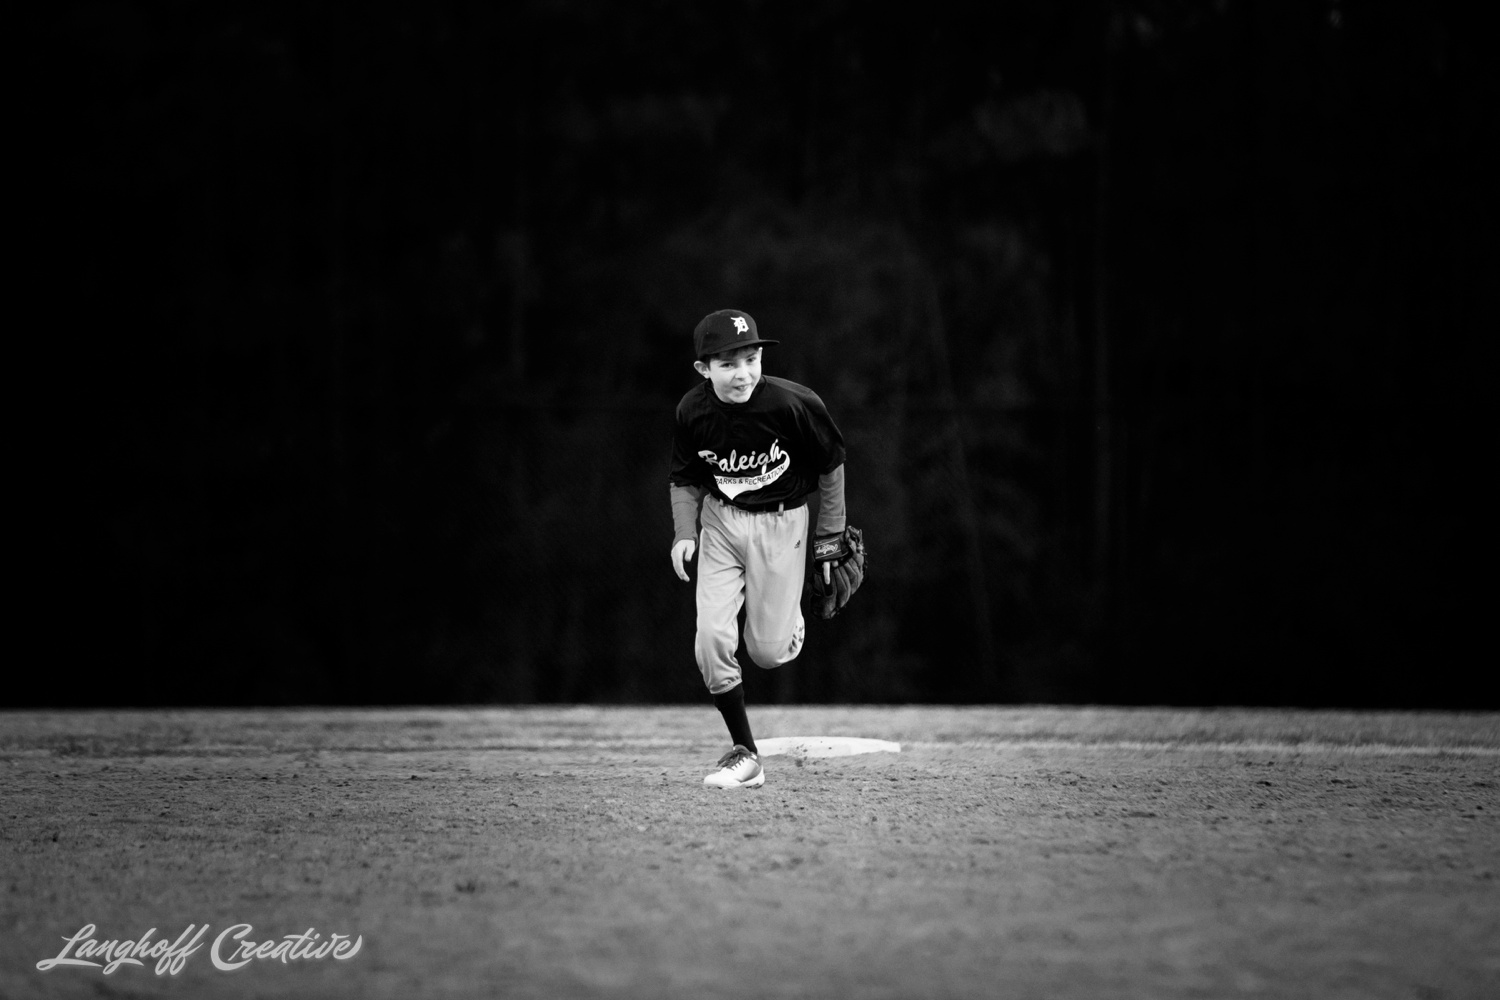 DocumentaryFamilySession-DocumentaryFamilyPhotography-RDUfamily-Baseball-RealLifeSession-LanghoffCreative-George-2018-16-image.jpg